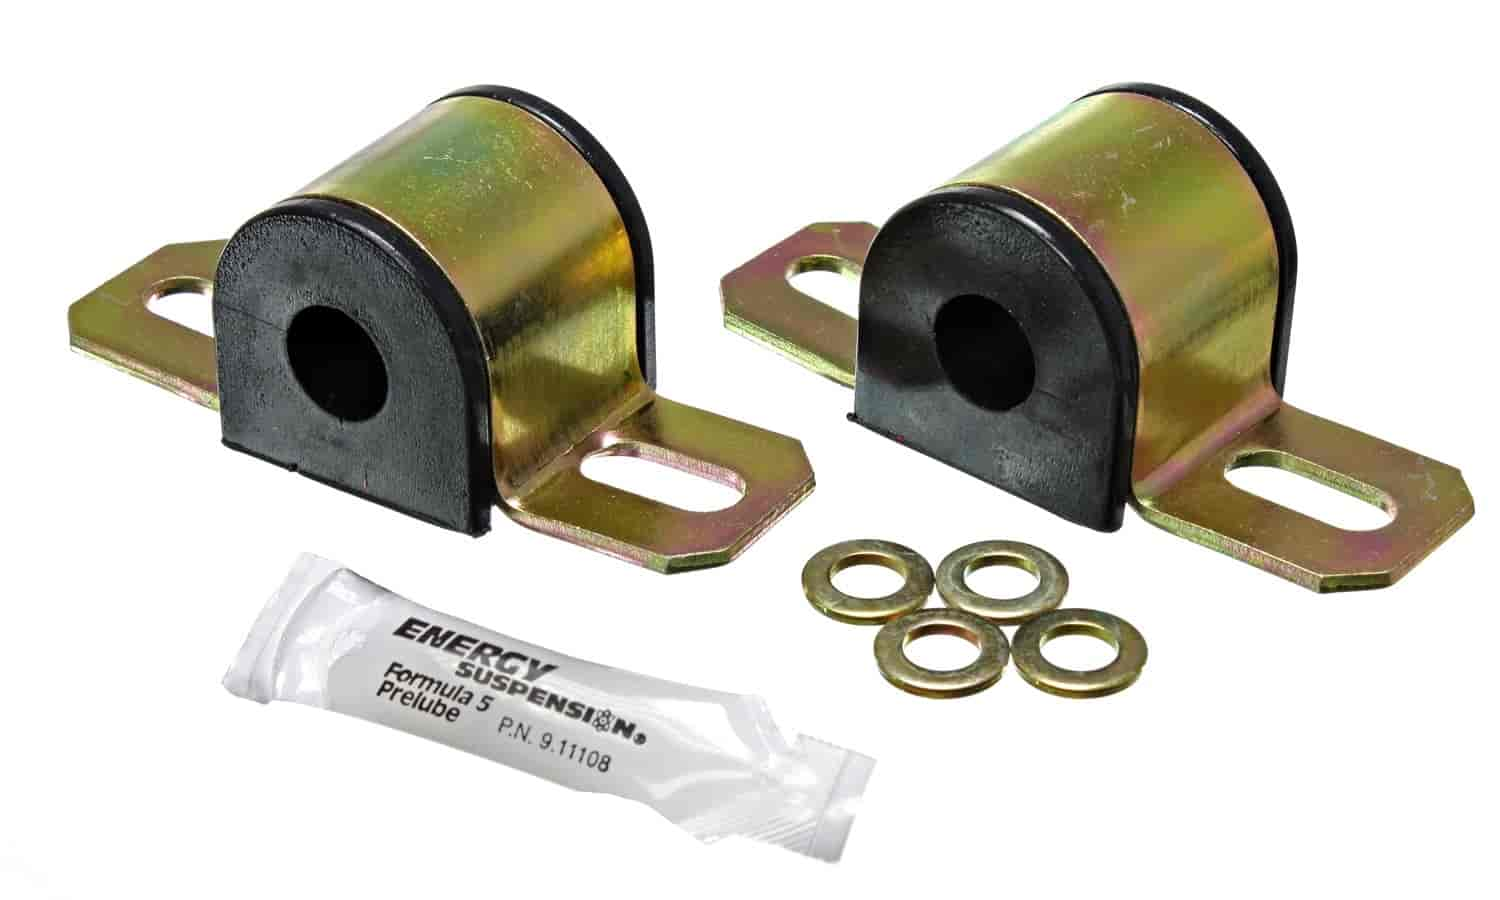 Energy Suspension 9-5108G